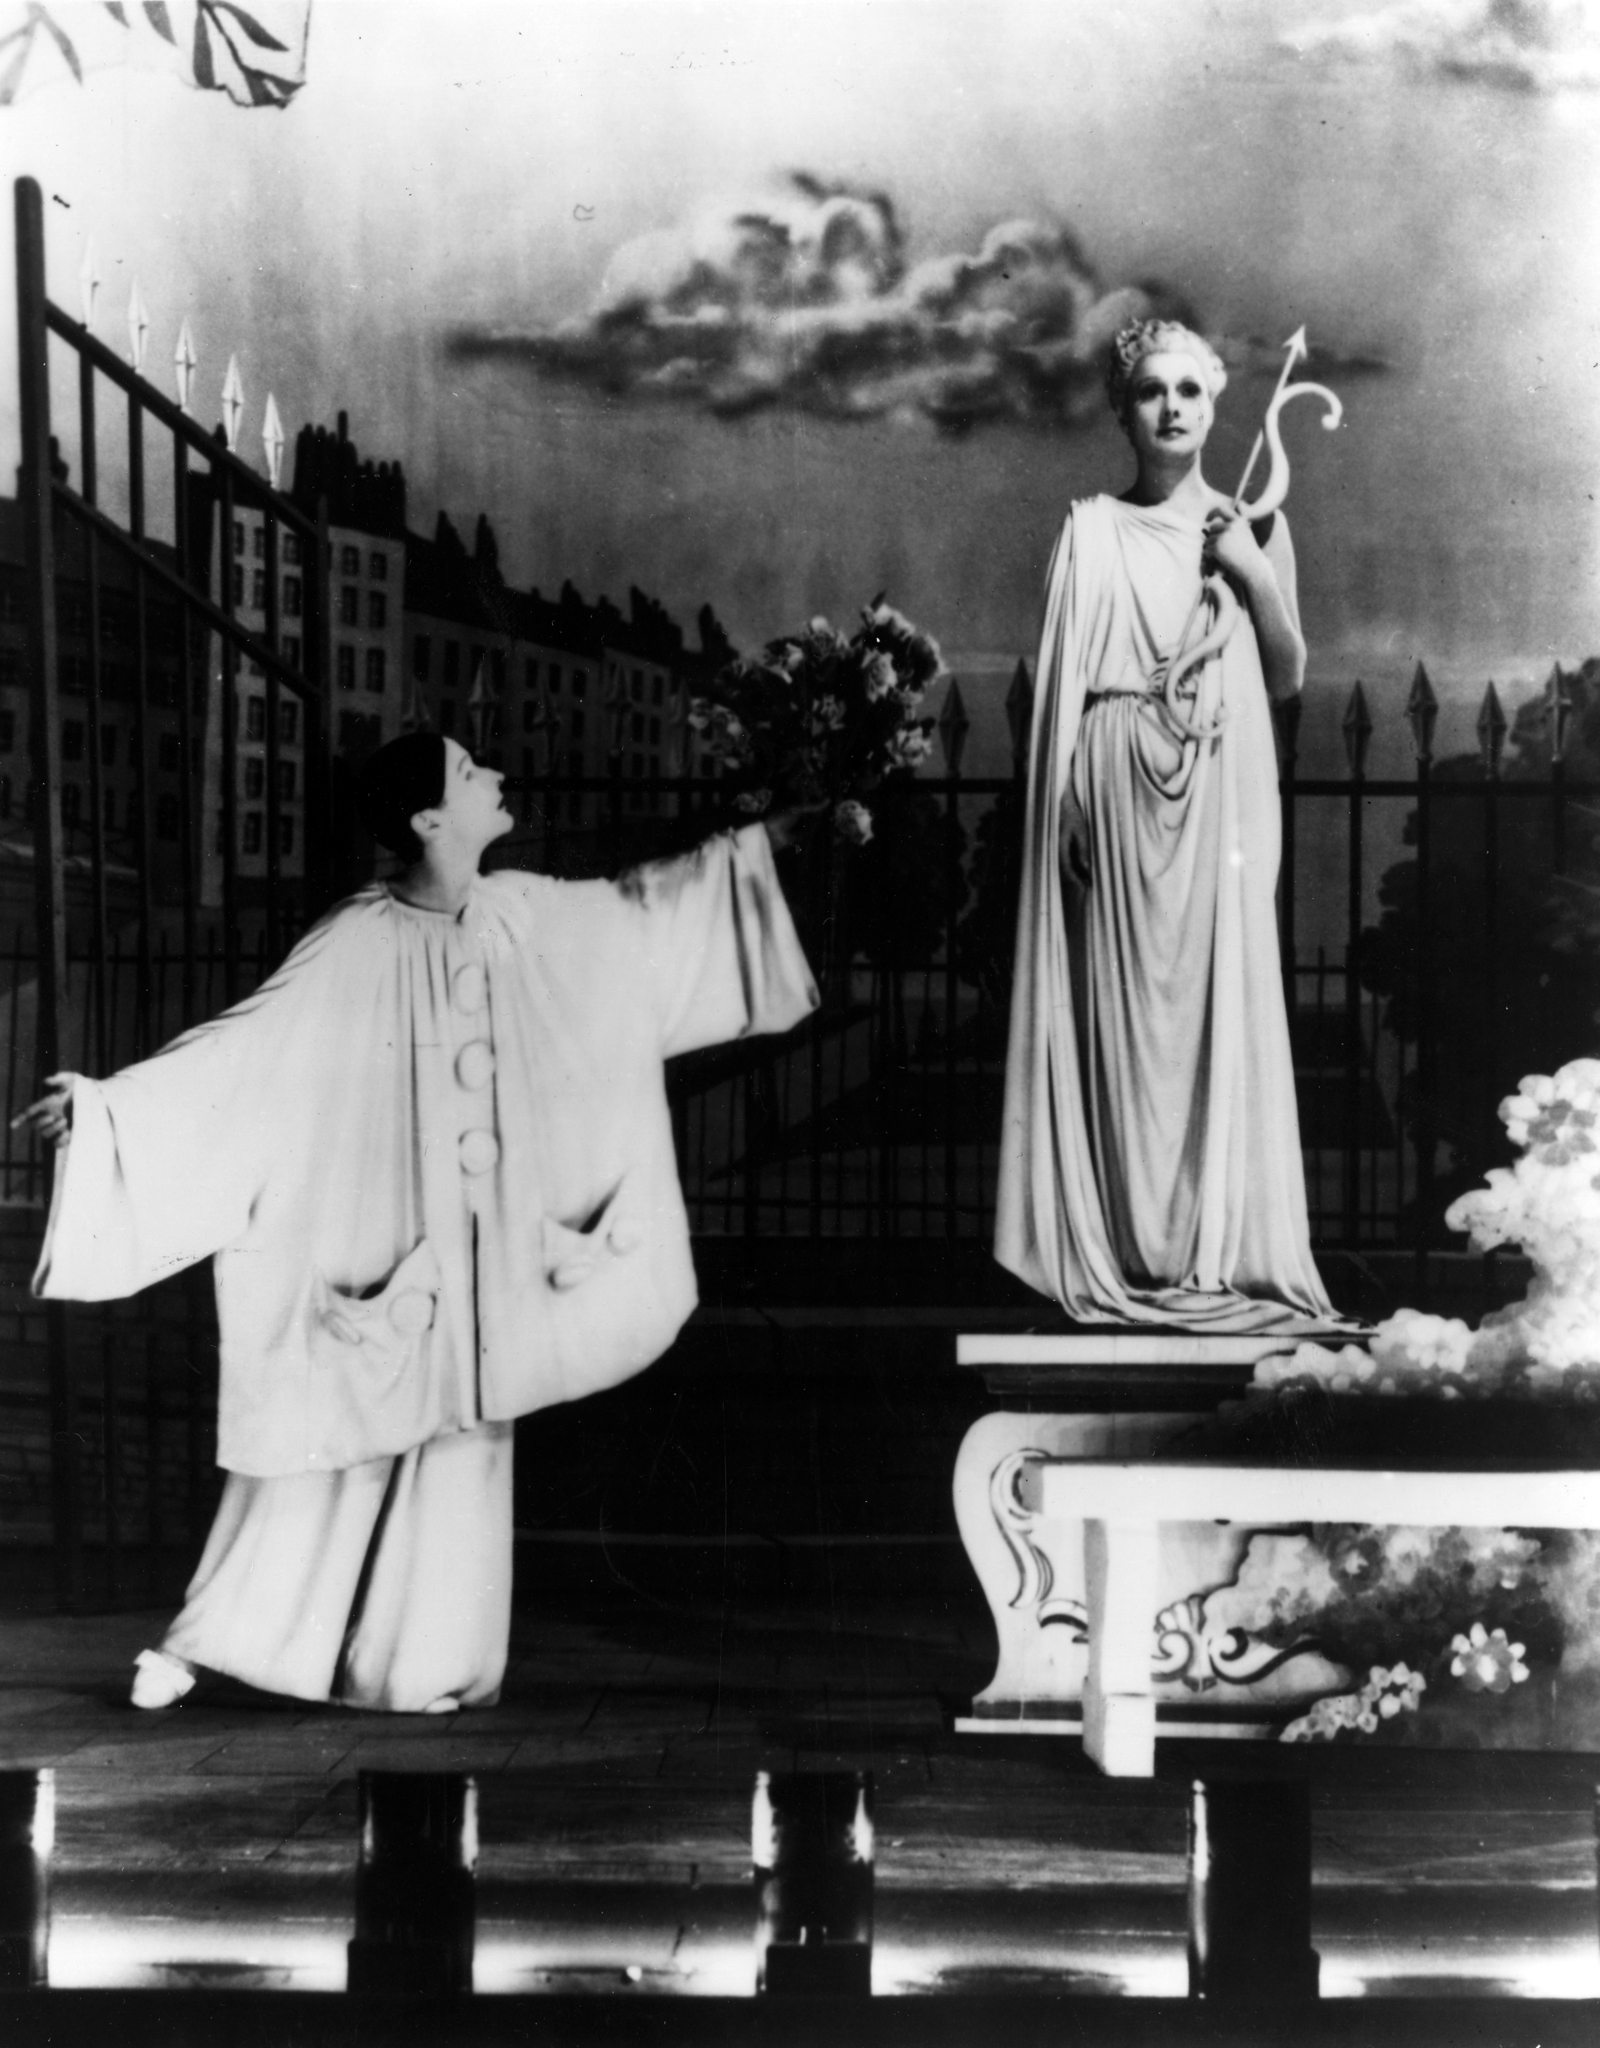 Arletty and Jean-Louis Barrault in Les enfants du paradis (1945)